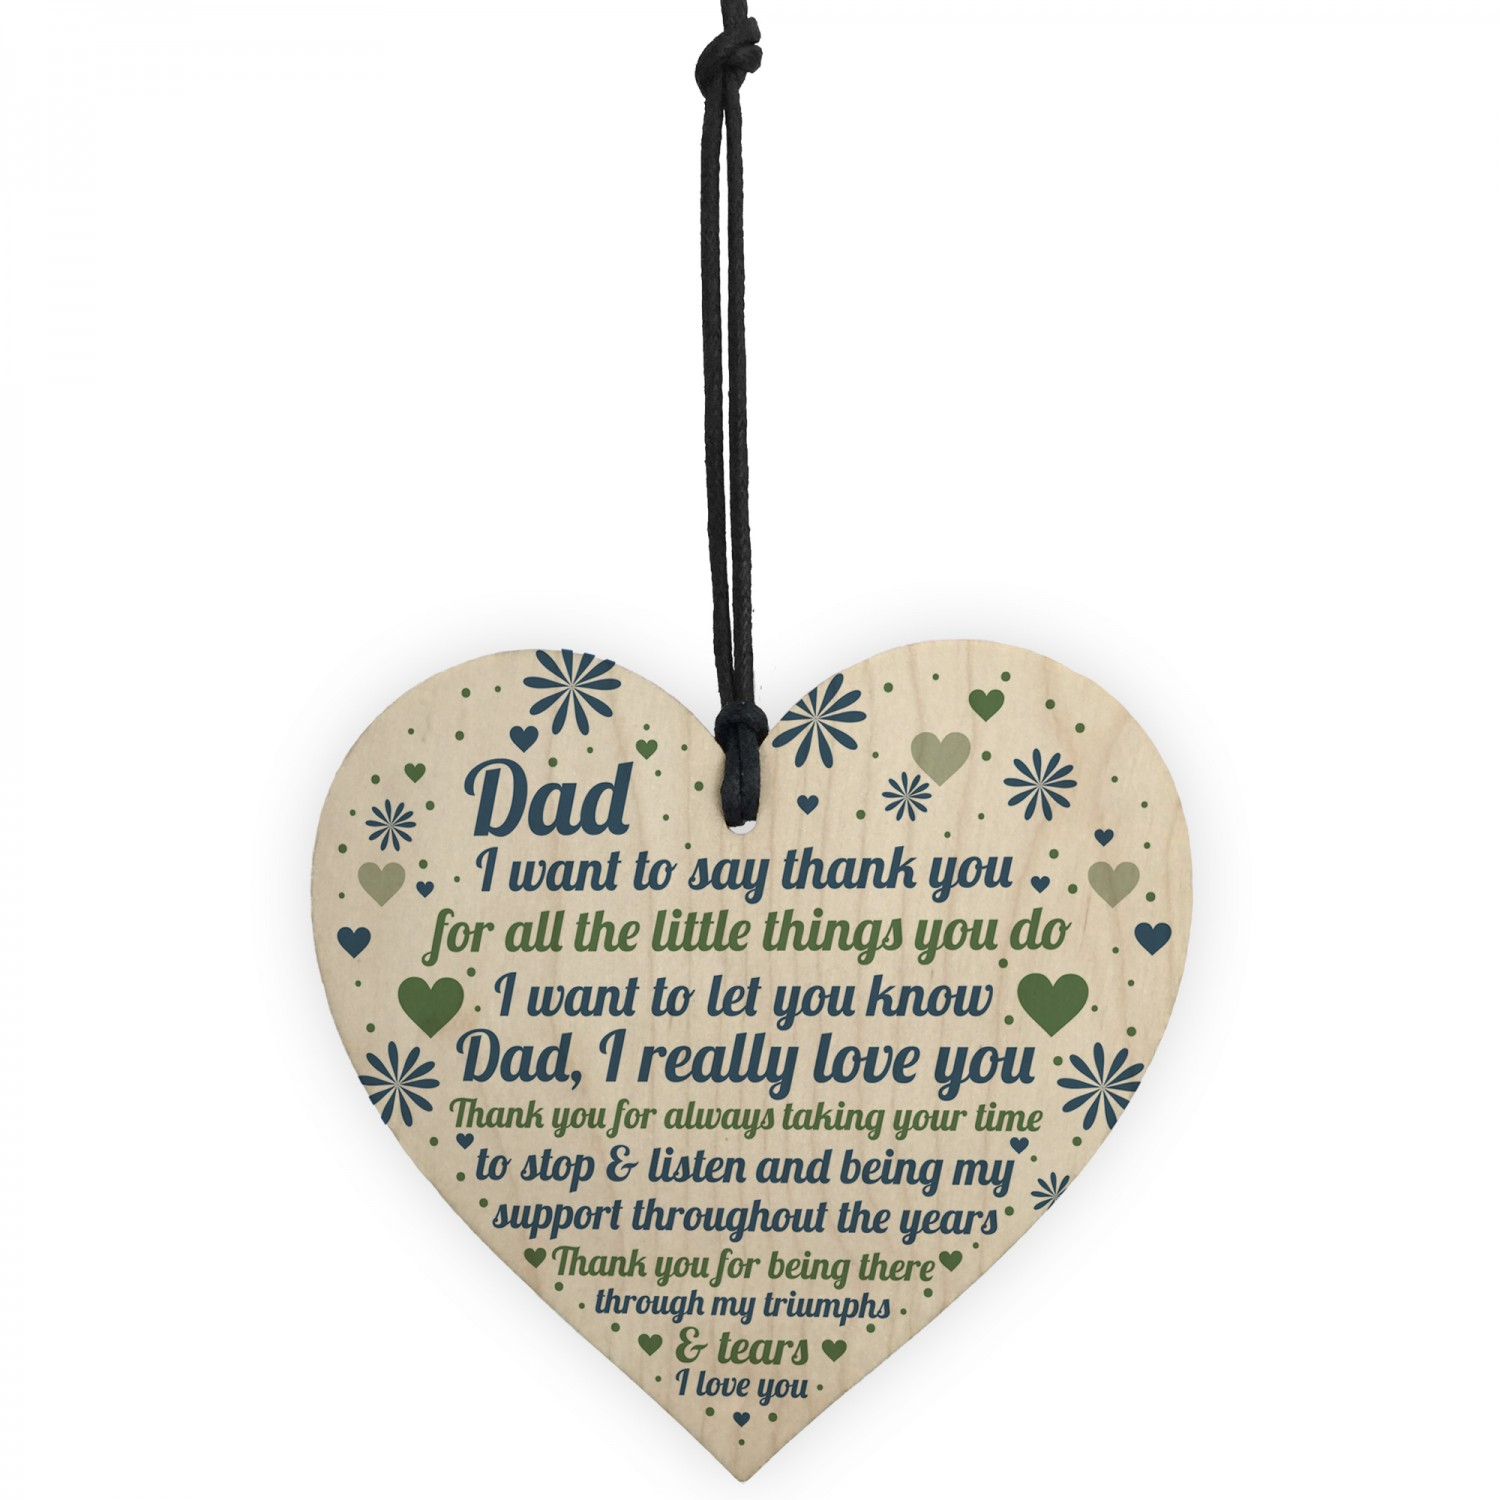 Dad Card Daddy Daughter Gift Birthday For From Son